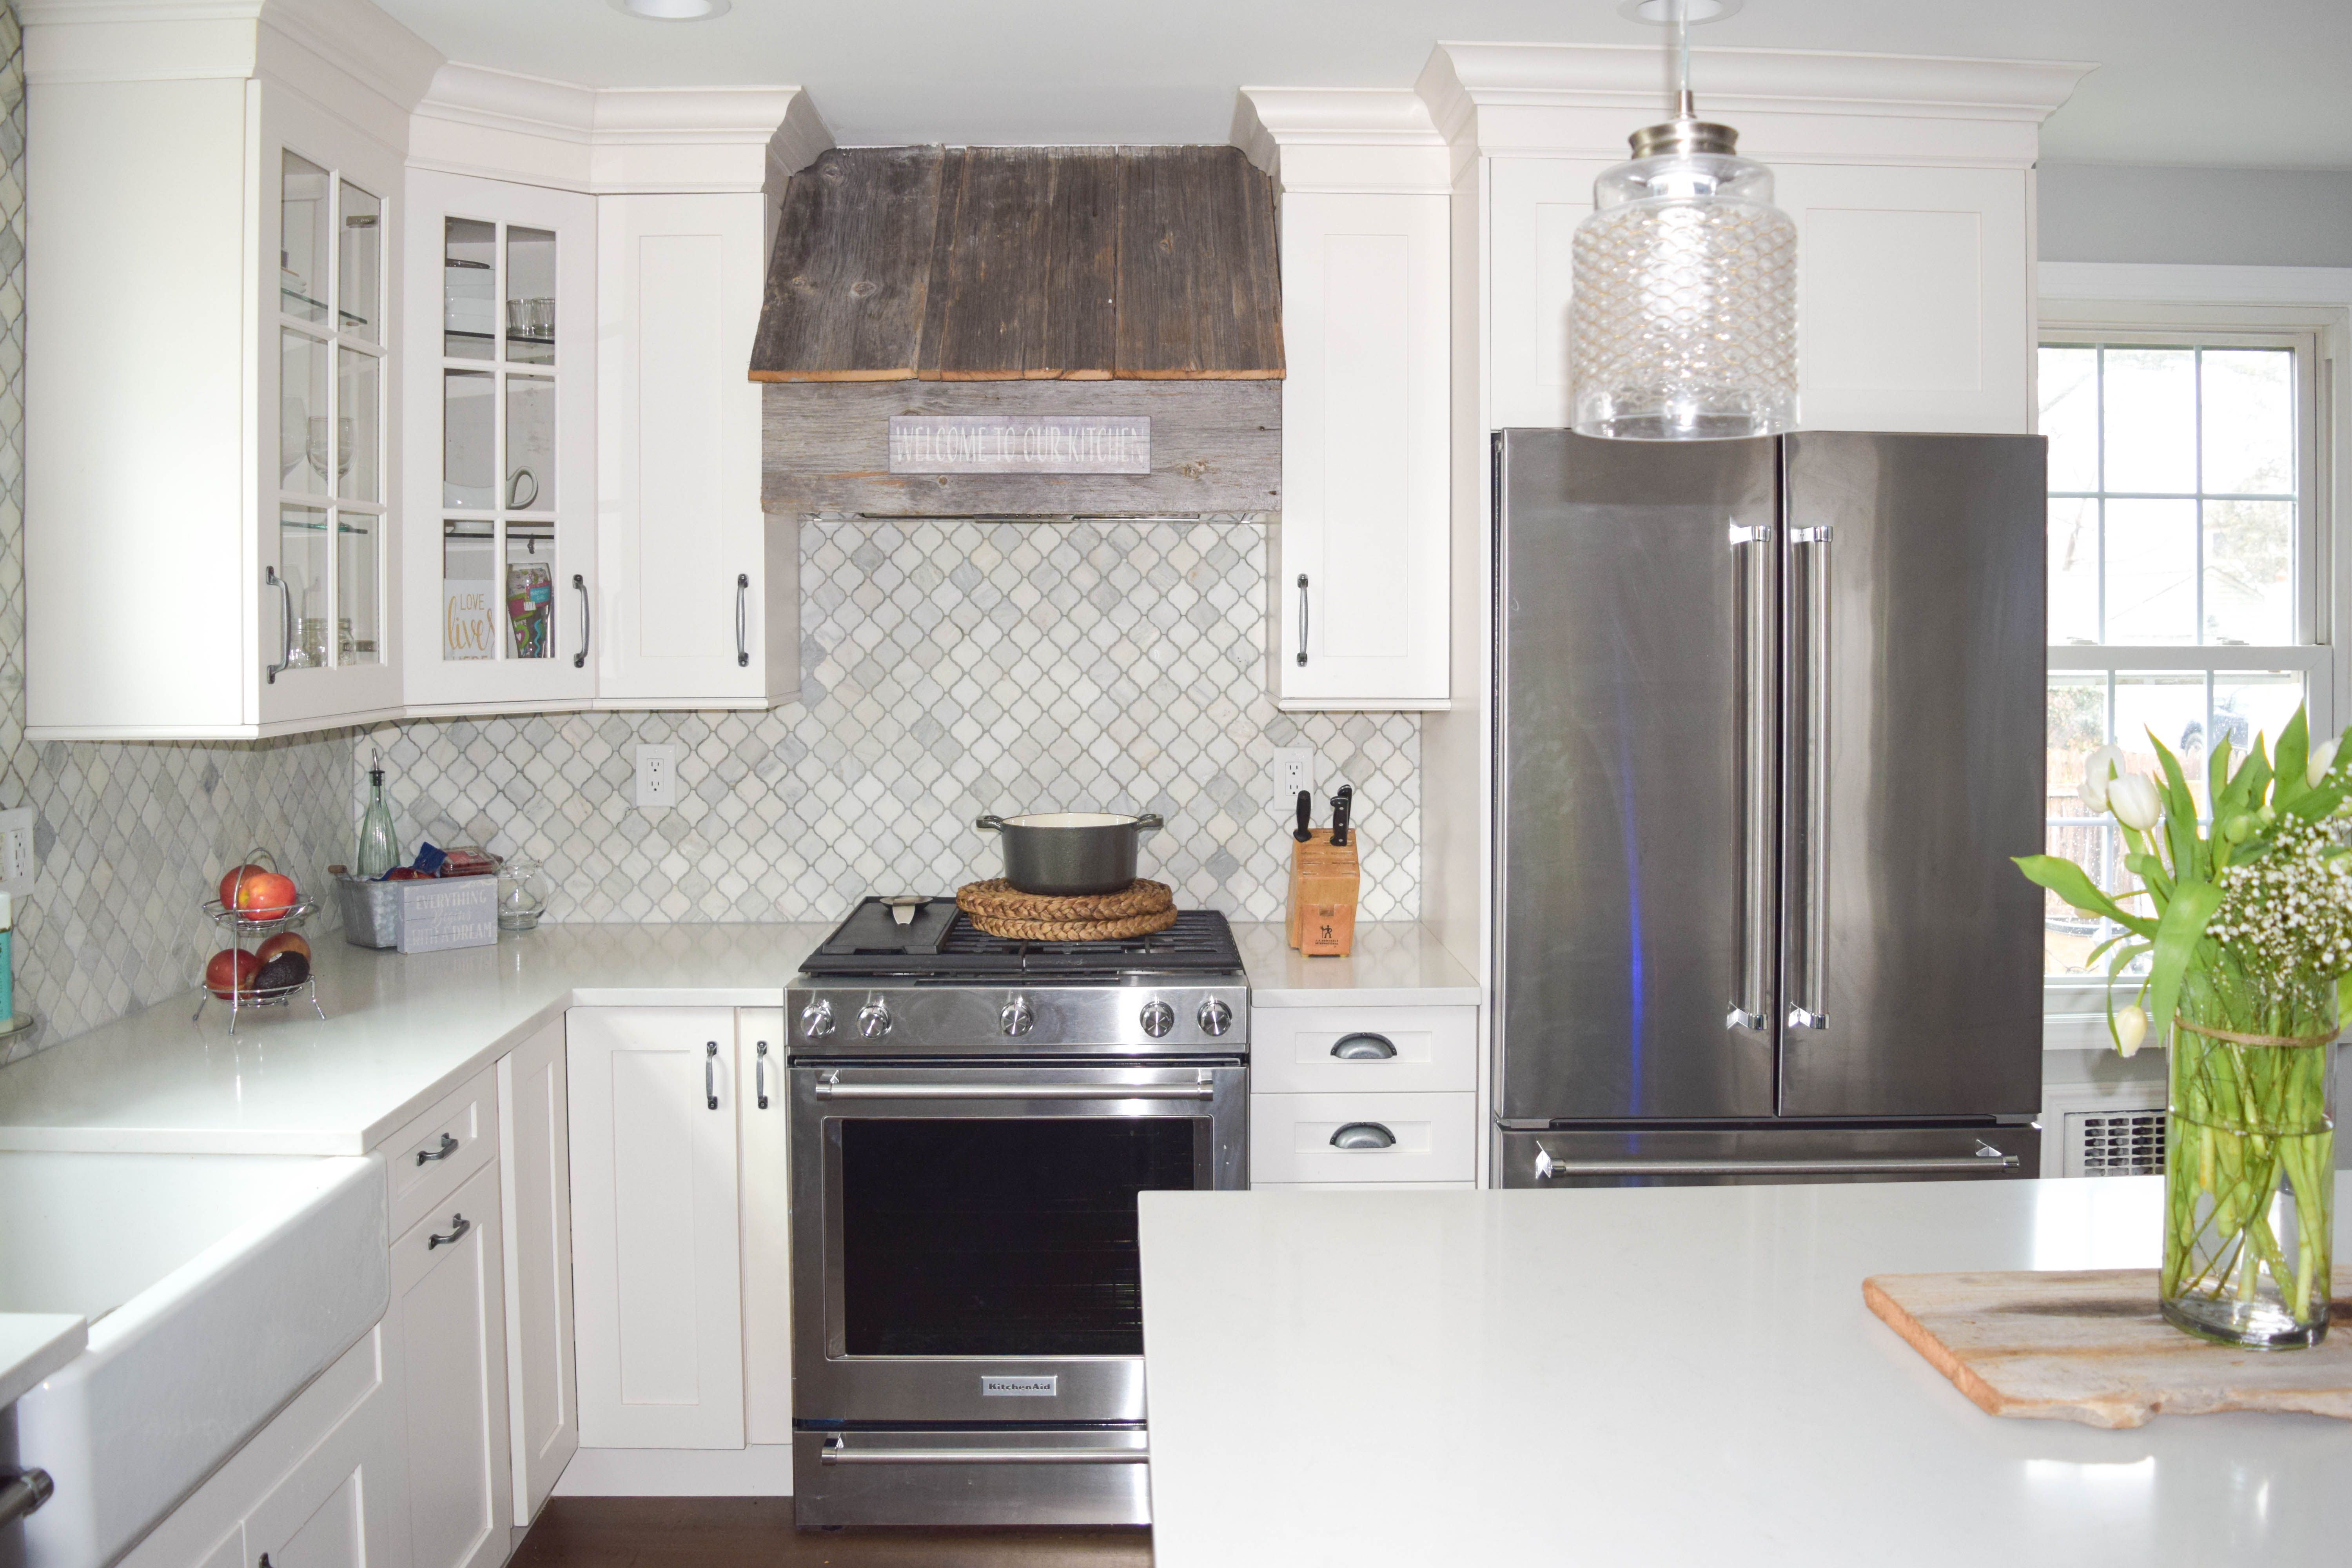 Pin by Coastal Cabinet Works on Our Work | Pinterest | Tri state ...